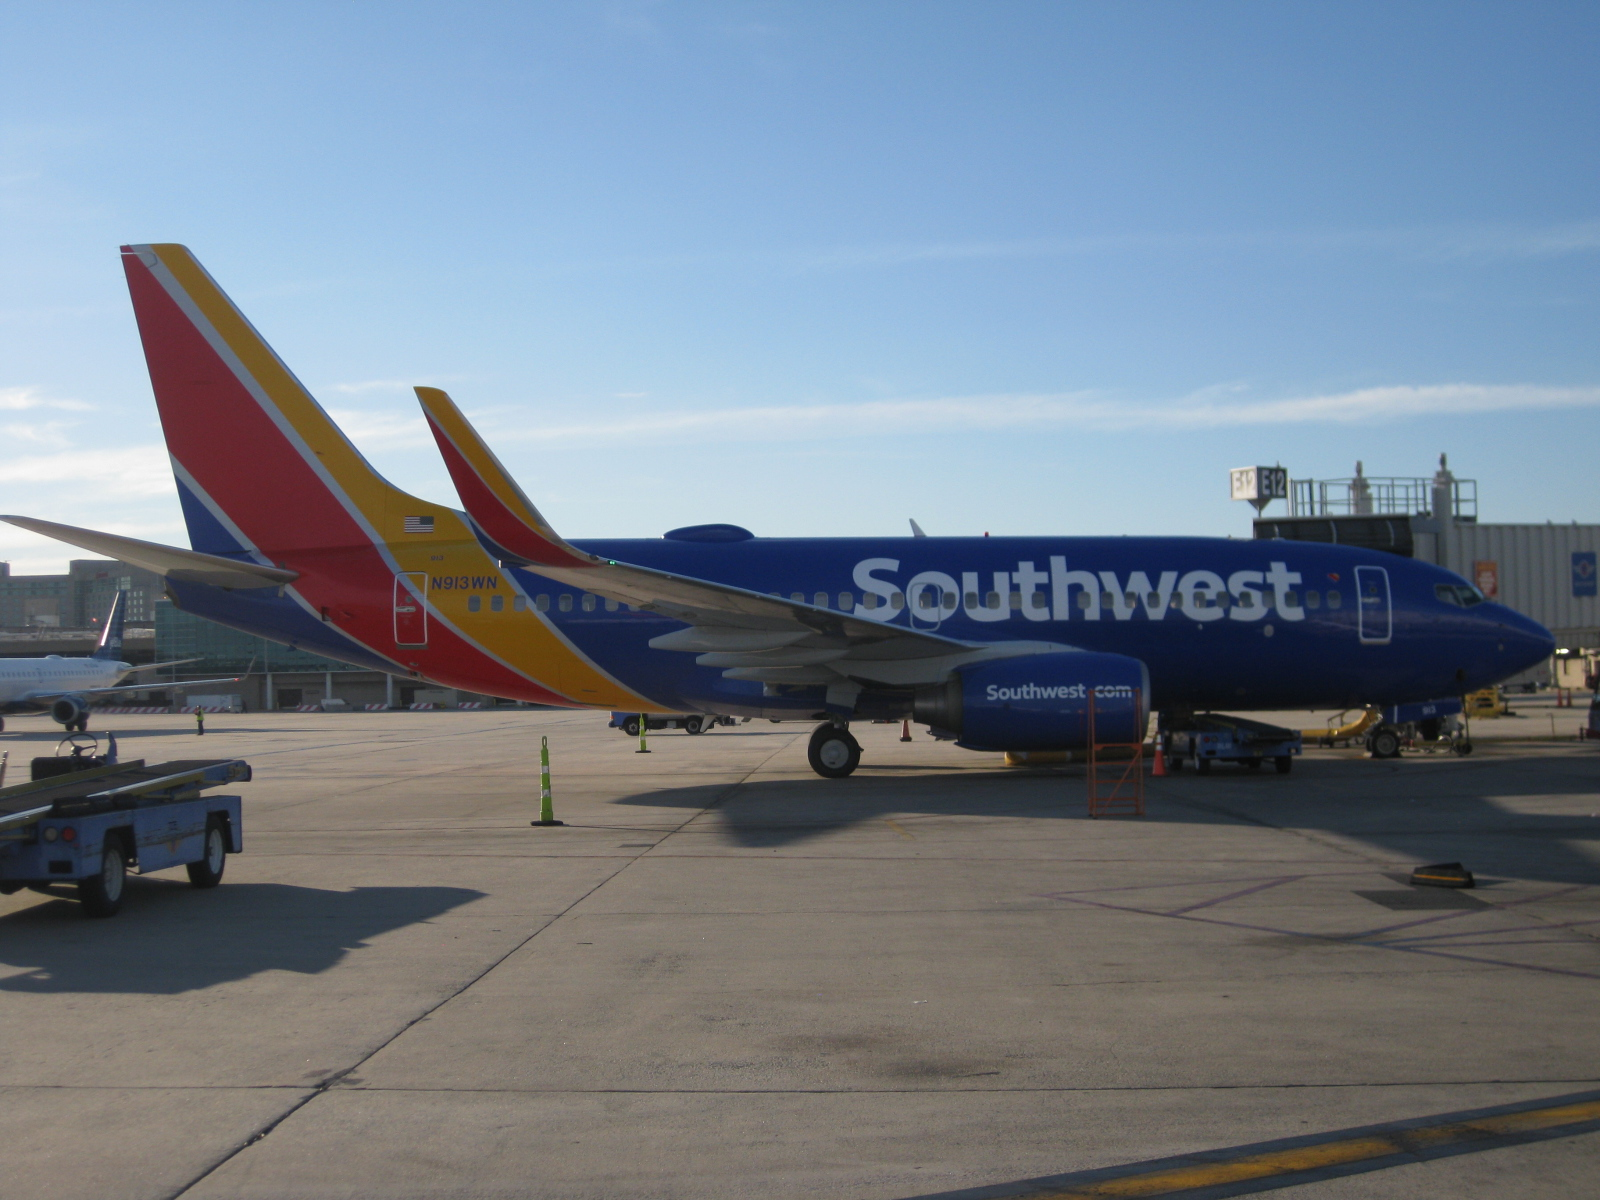 https://i0.wp.com/www.airportspotting.com/wp-content/uploads/2014/11/Southwest_Airlines_in_Heart_Livery.jpg